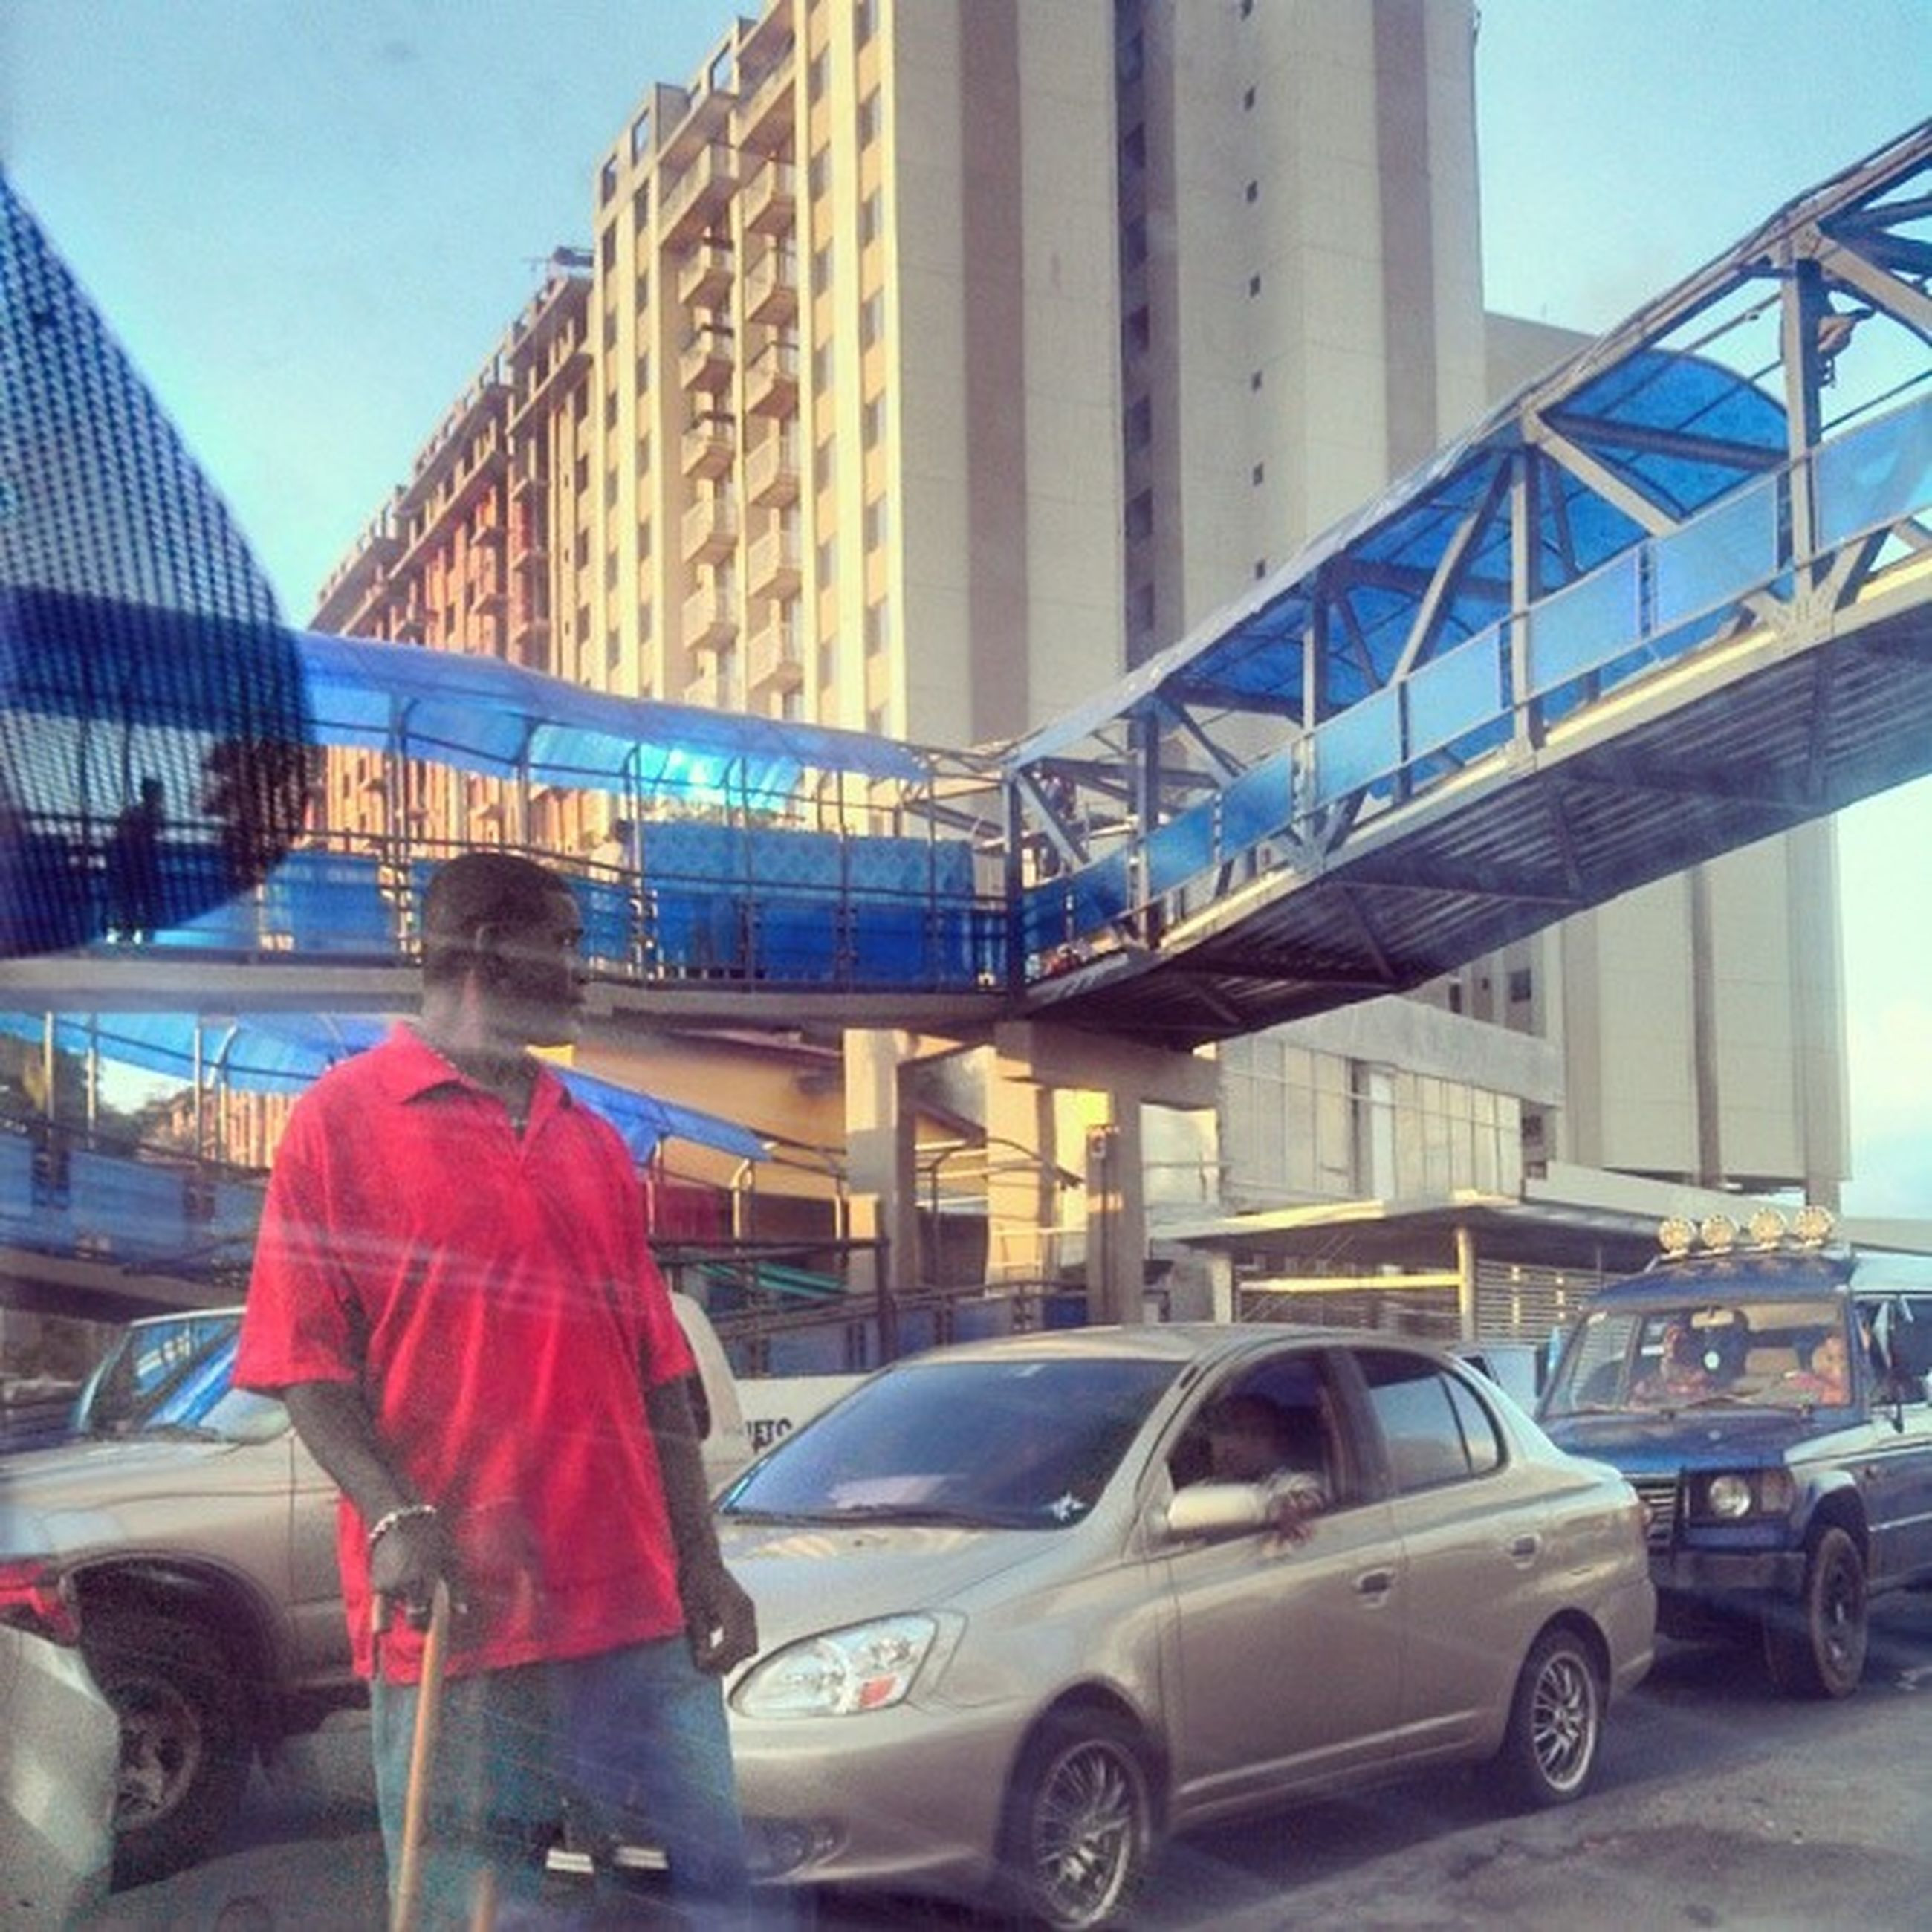 transportation, architecture, built structure, mode of transport, land vehicle, building exterior, car, city, travel, day, bridge - man made structure, street, sunlight, city life, incidental people, blue, outdoors, sky